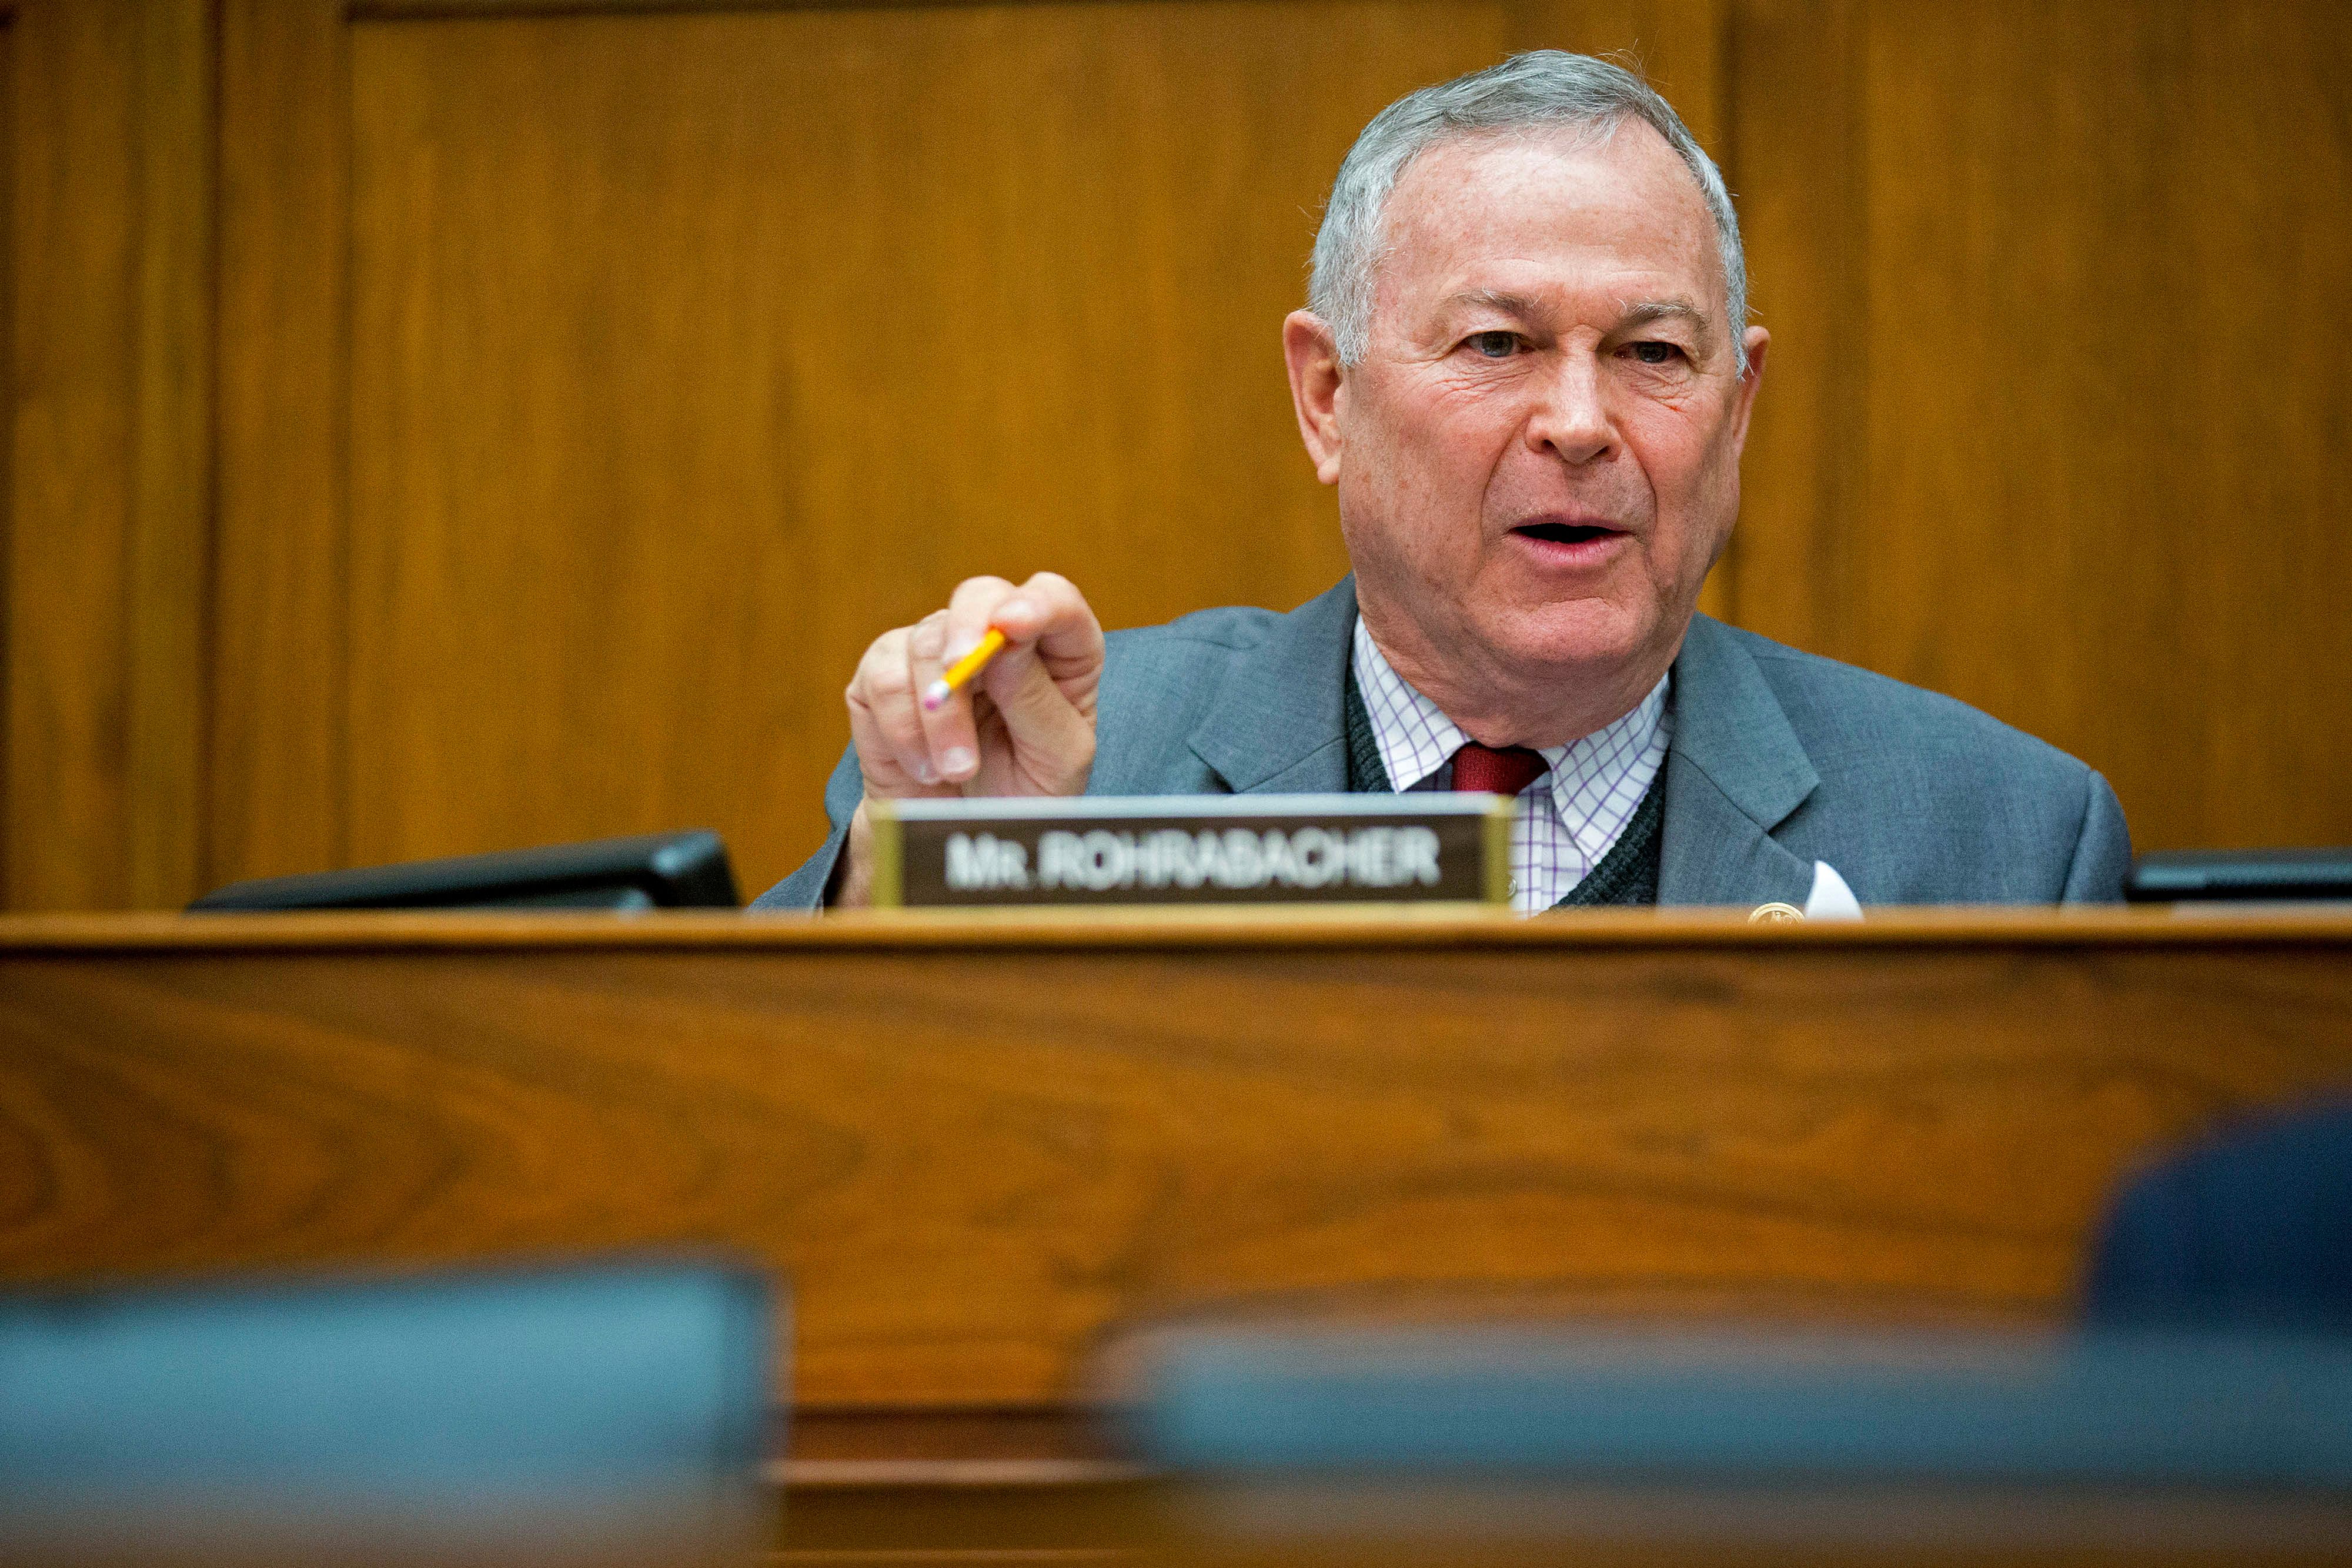 Representative Dana Rohrabacher, a Republican from California, questions Retired General John Allen, the special presidential envoy for the global coalition against Islamic State, not pictured, in Washington, D.C., U.S., on Thursday, March 26, 2015. The U.S. and allies began airstrikes on the Iraqi city of Tikrit, supporting Iranian-backed Shiite militias seeking to expel Islamic State fighters from the area. Asked whether Iran could end up controlling Iraq, Allen said, 'I don't think that's going to be the case. In the end, Iraq is an Arab country.' Iranians, he said, 'are a different people.' Photographer: Andrew Harrer/Bloomberg via Getty Images